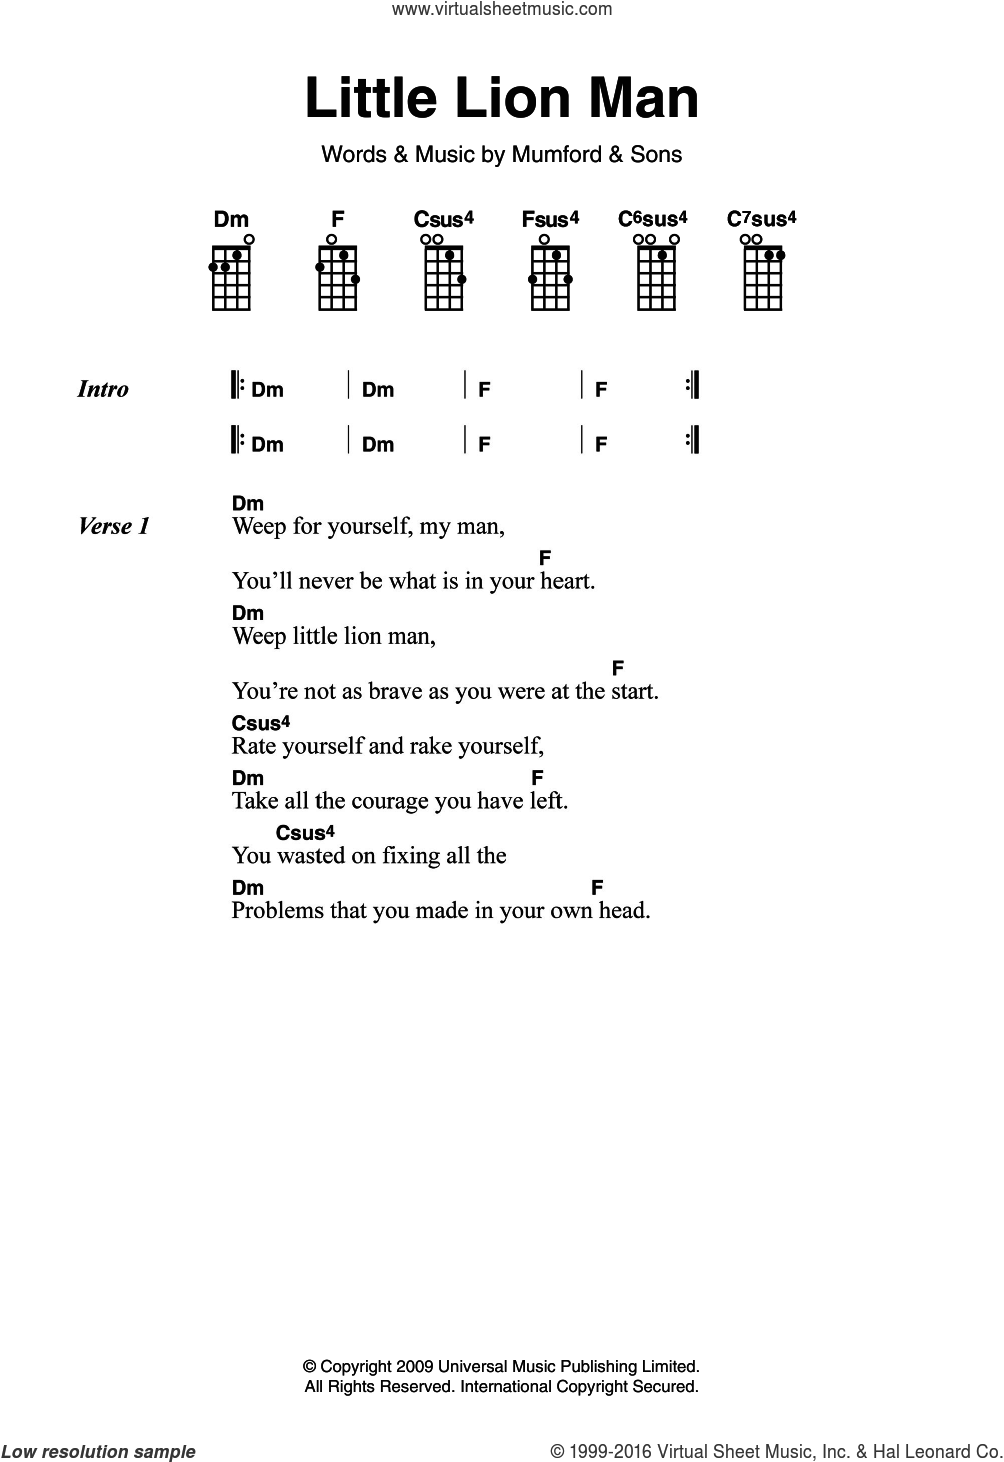 Little Lion Man sheet music for voice, piano or guitar by Mumford & Sons